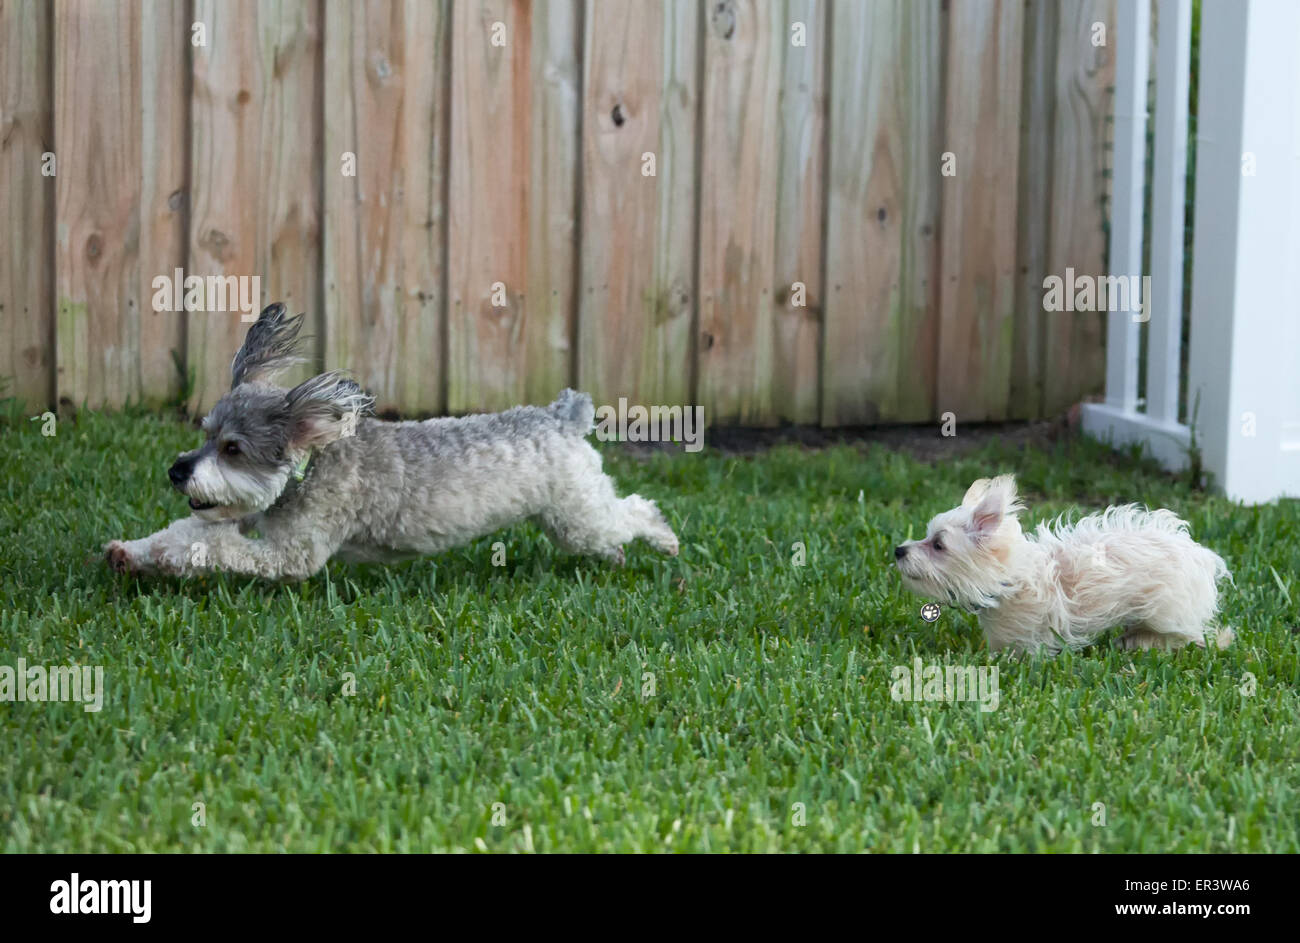 Dogs Playing - Stock Image